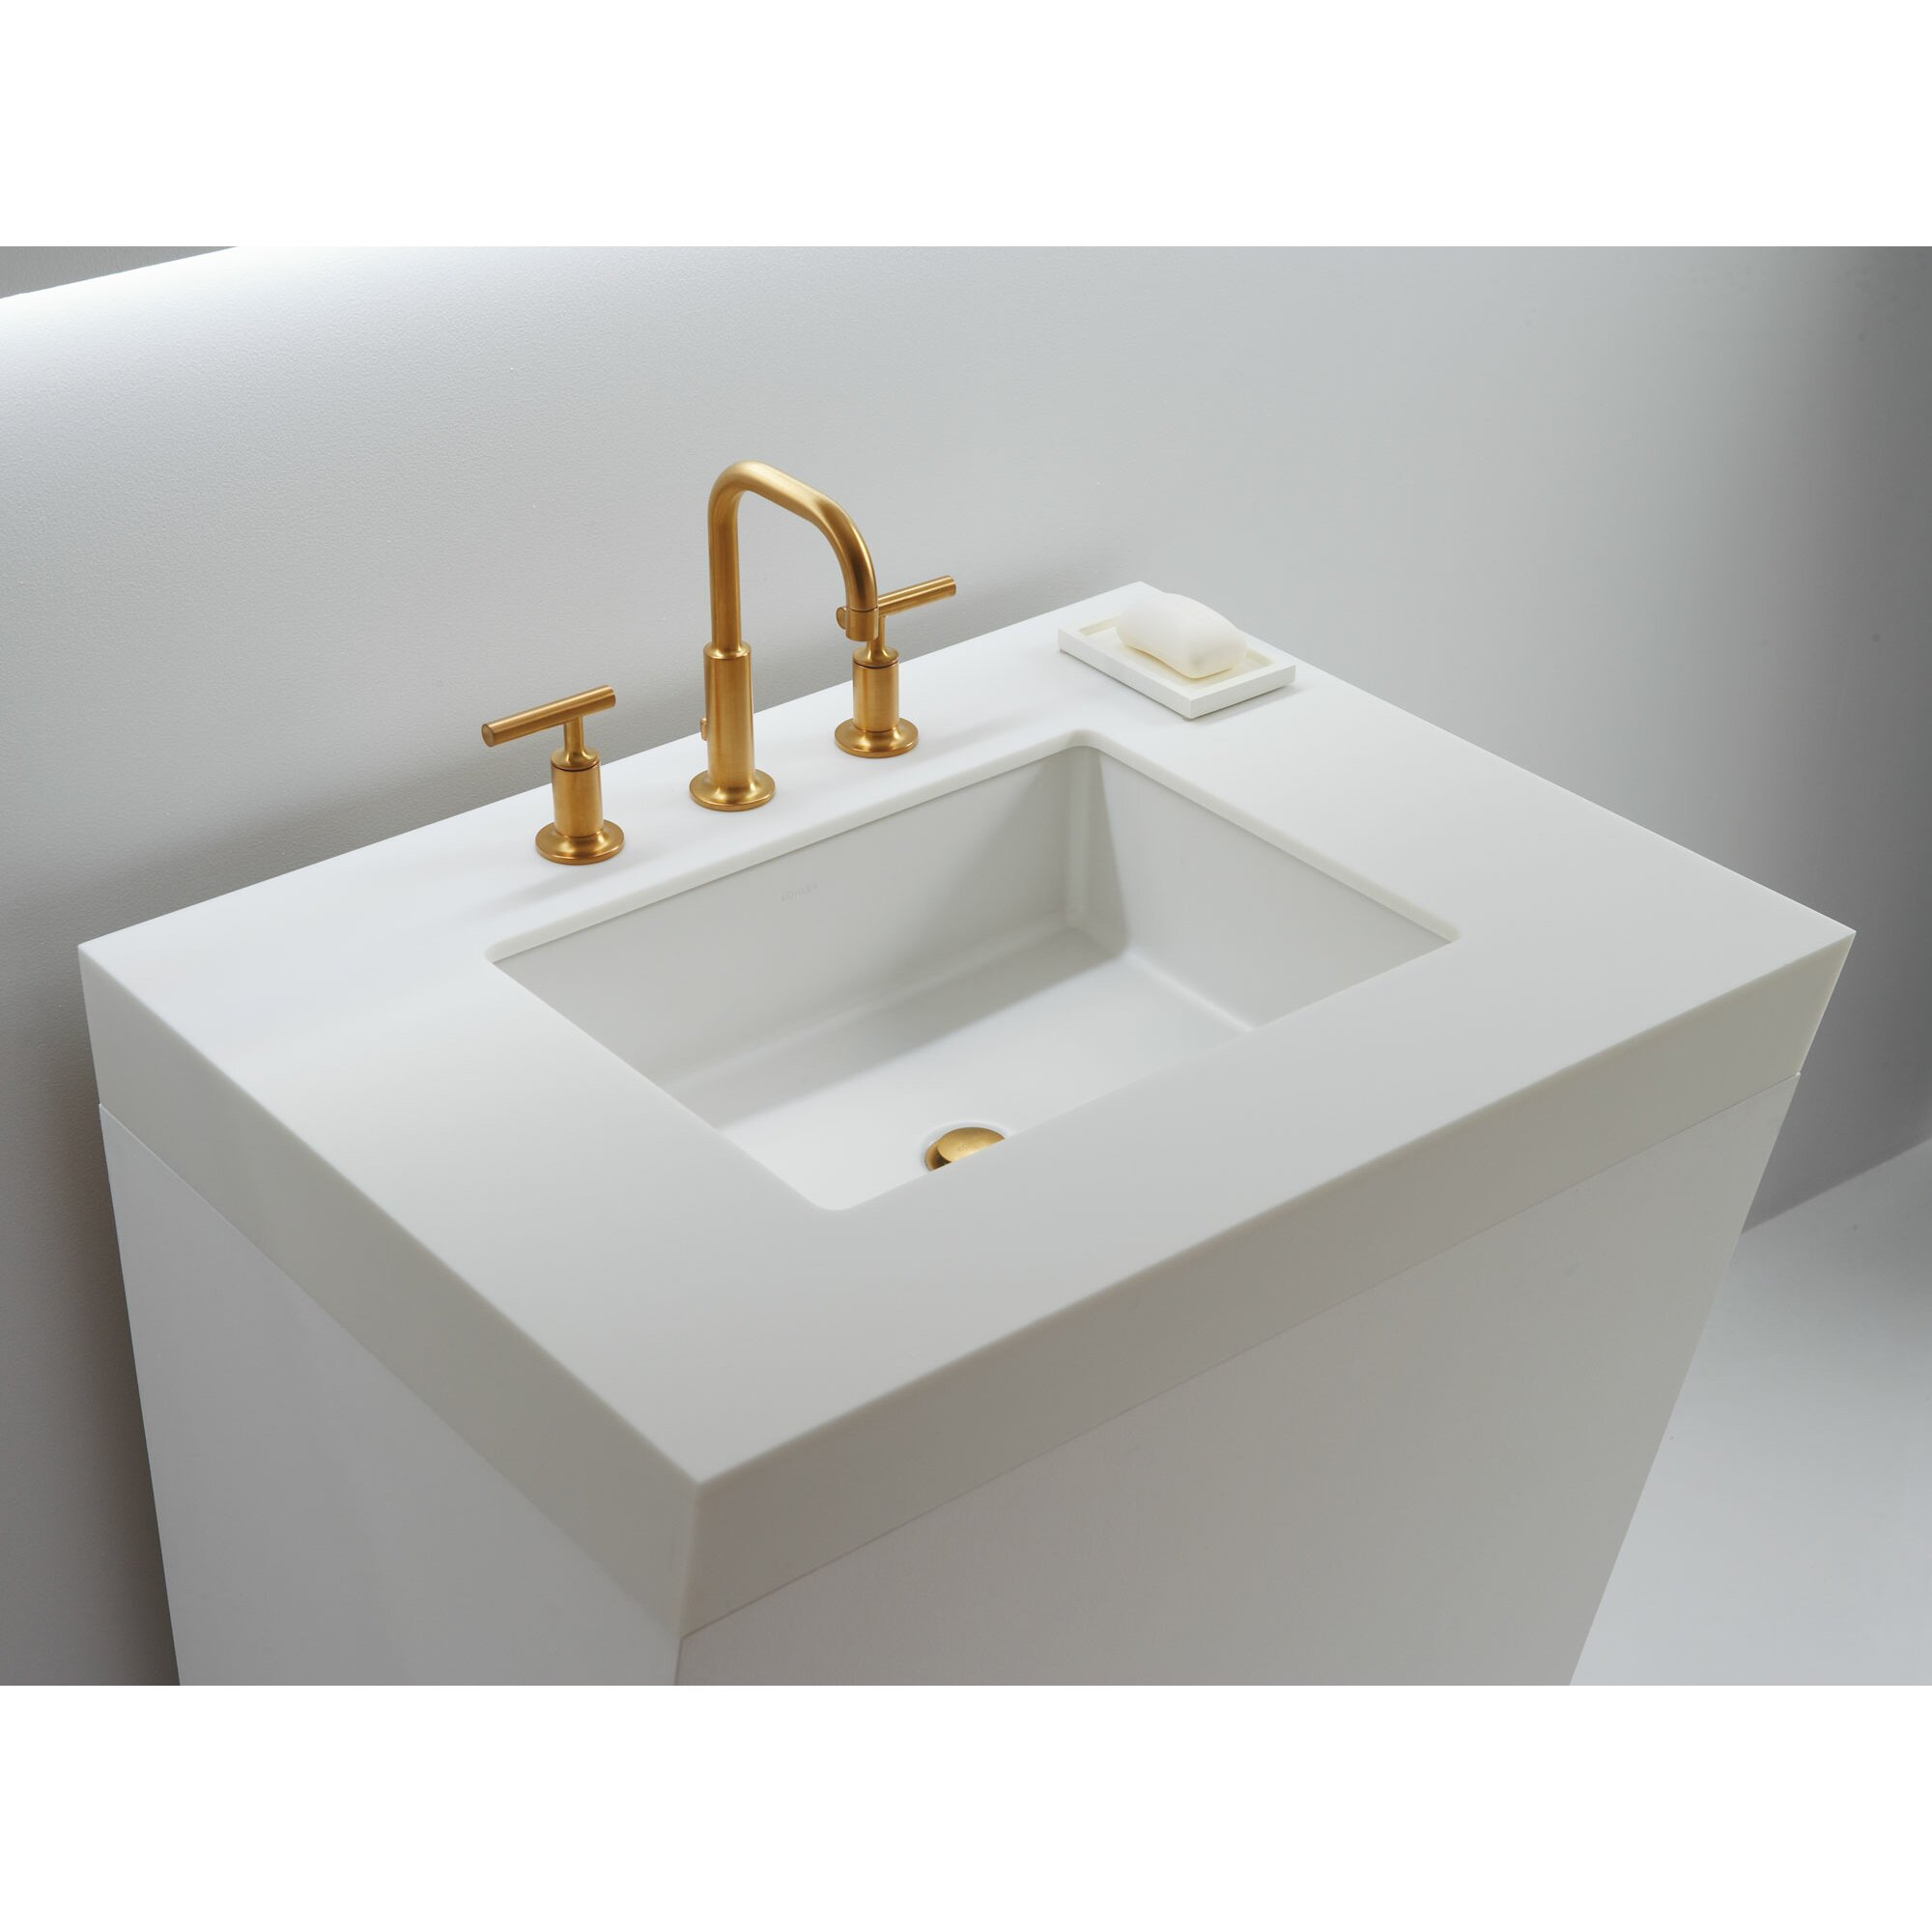 undermount bathroom sink kohler verticyl rectangular undermount bathroom sink with 14858